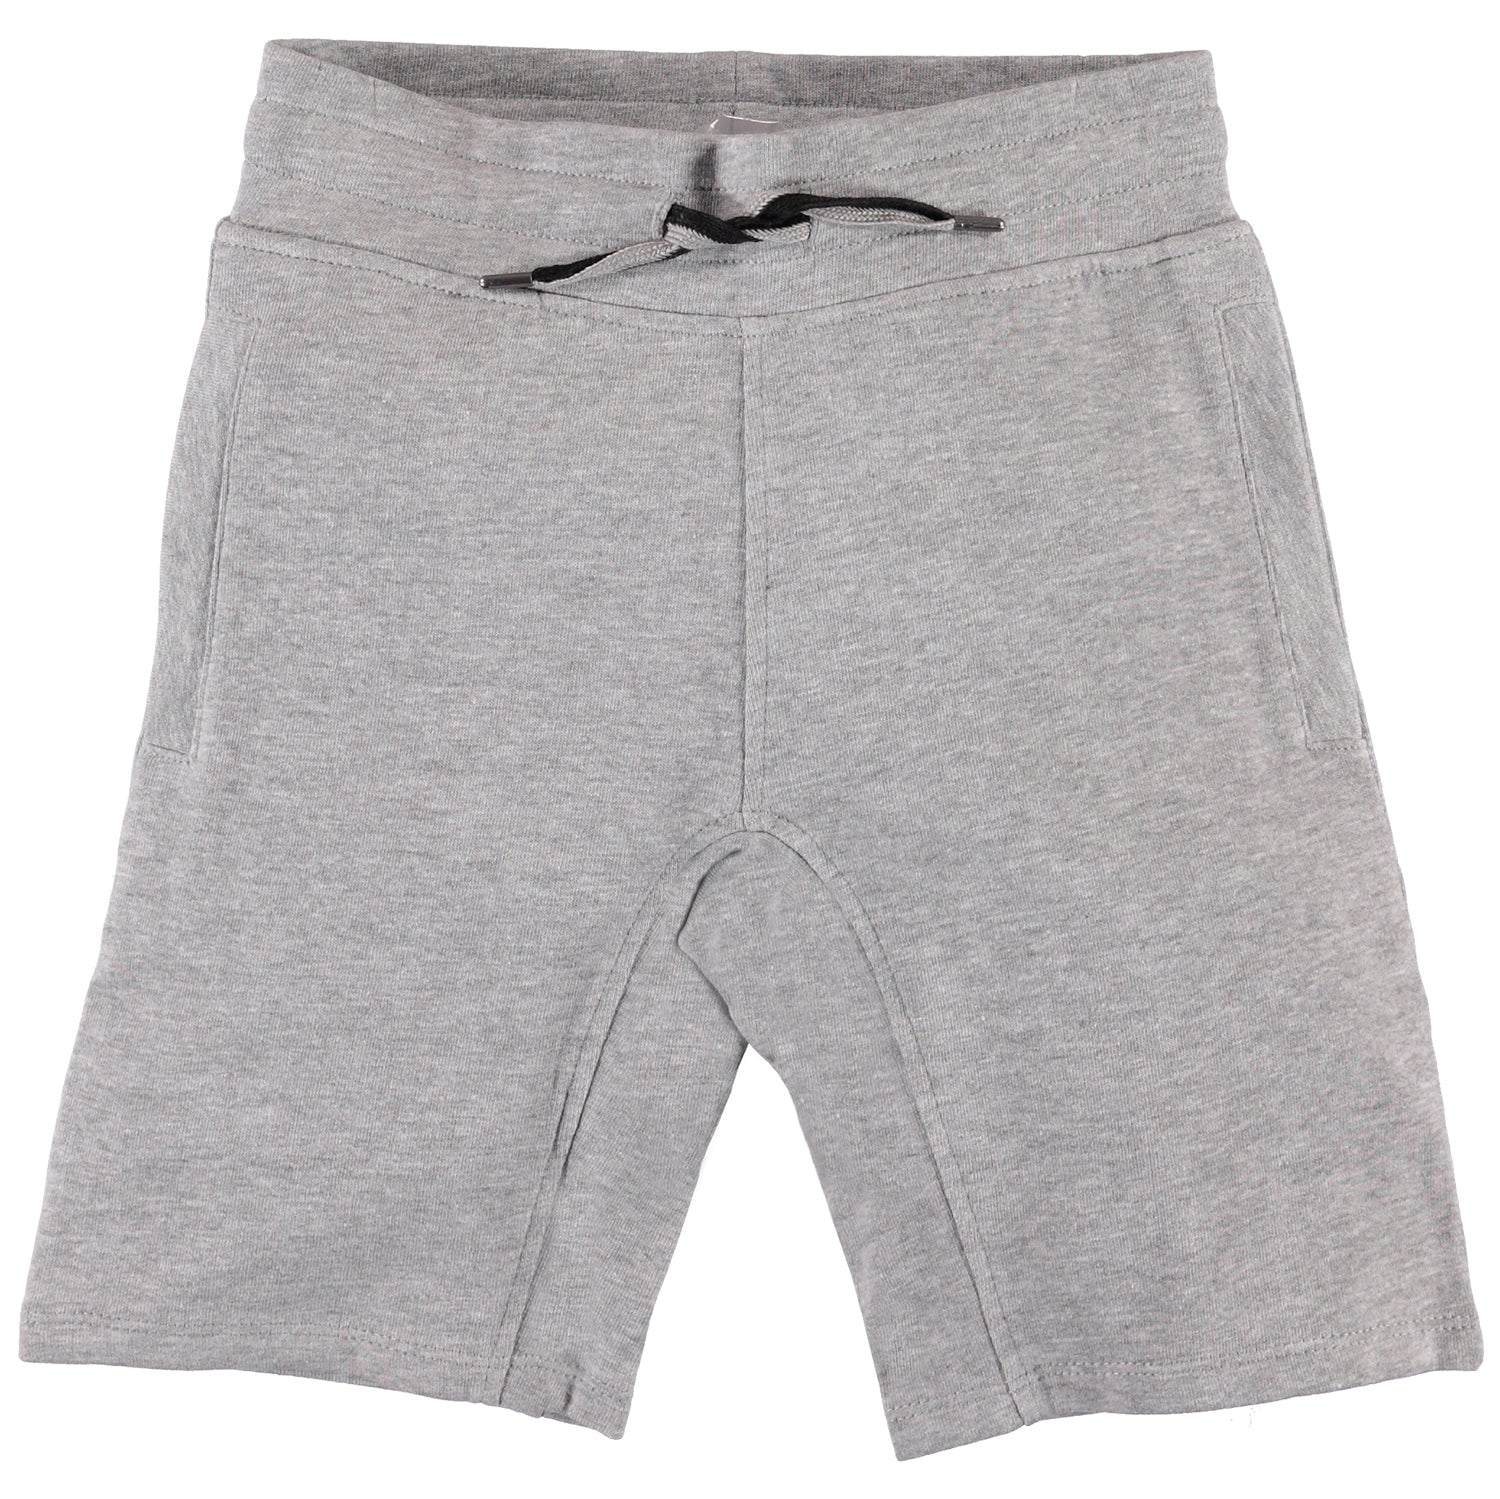 yoya, kids, boys, molo, casual, summer, lounge, jersey, drawstring, pull on, sweat shorts